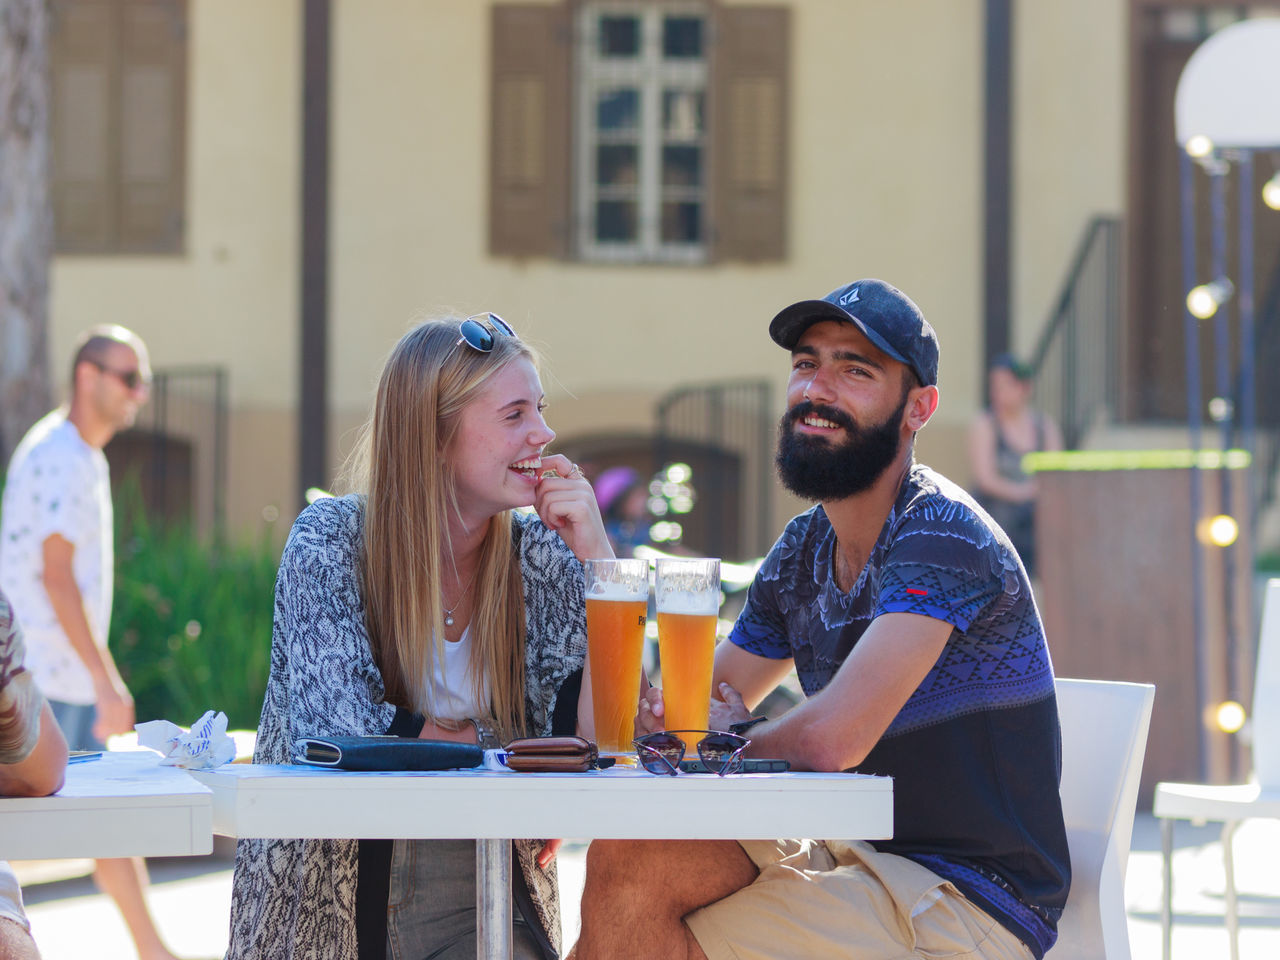 Beautiful stock photos of oktoberfest, young adult, young women, young men, table